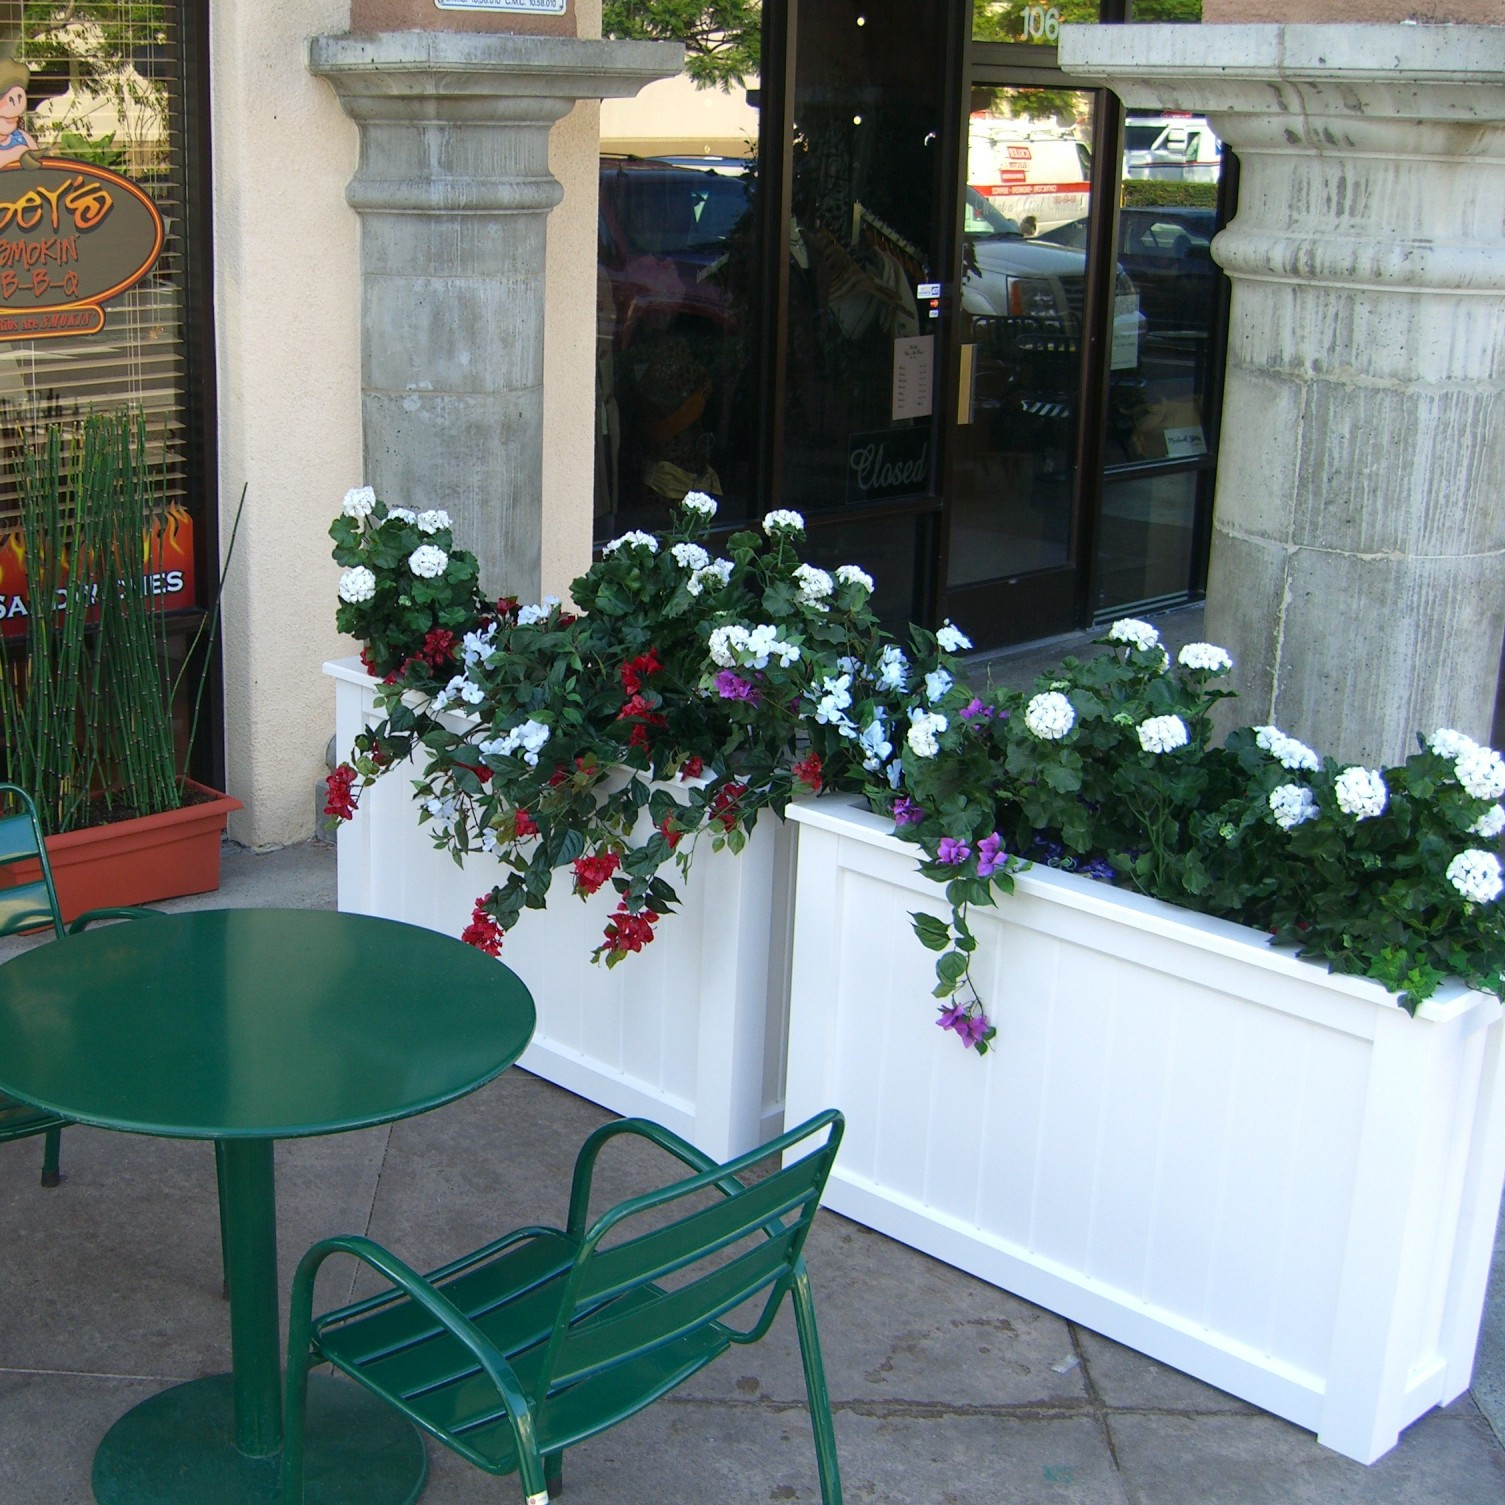 Planters: Enhancing Your Storefront With Planters And Window Boxes